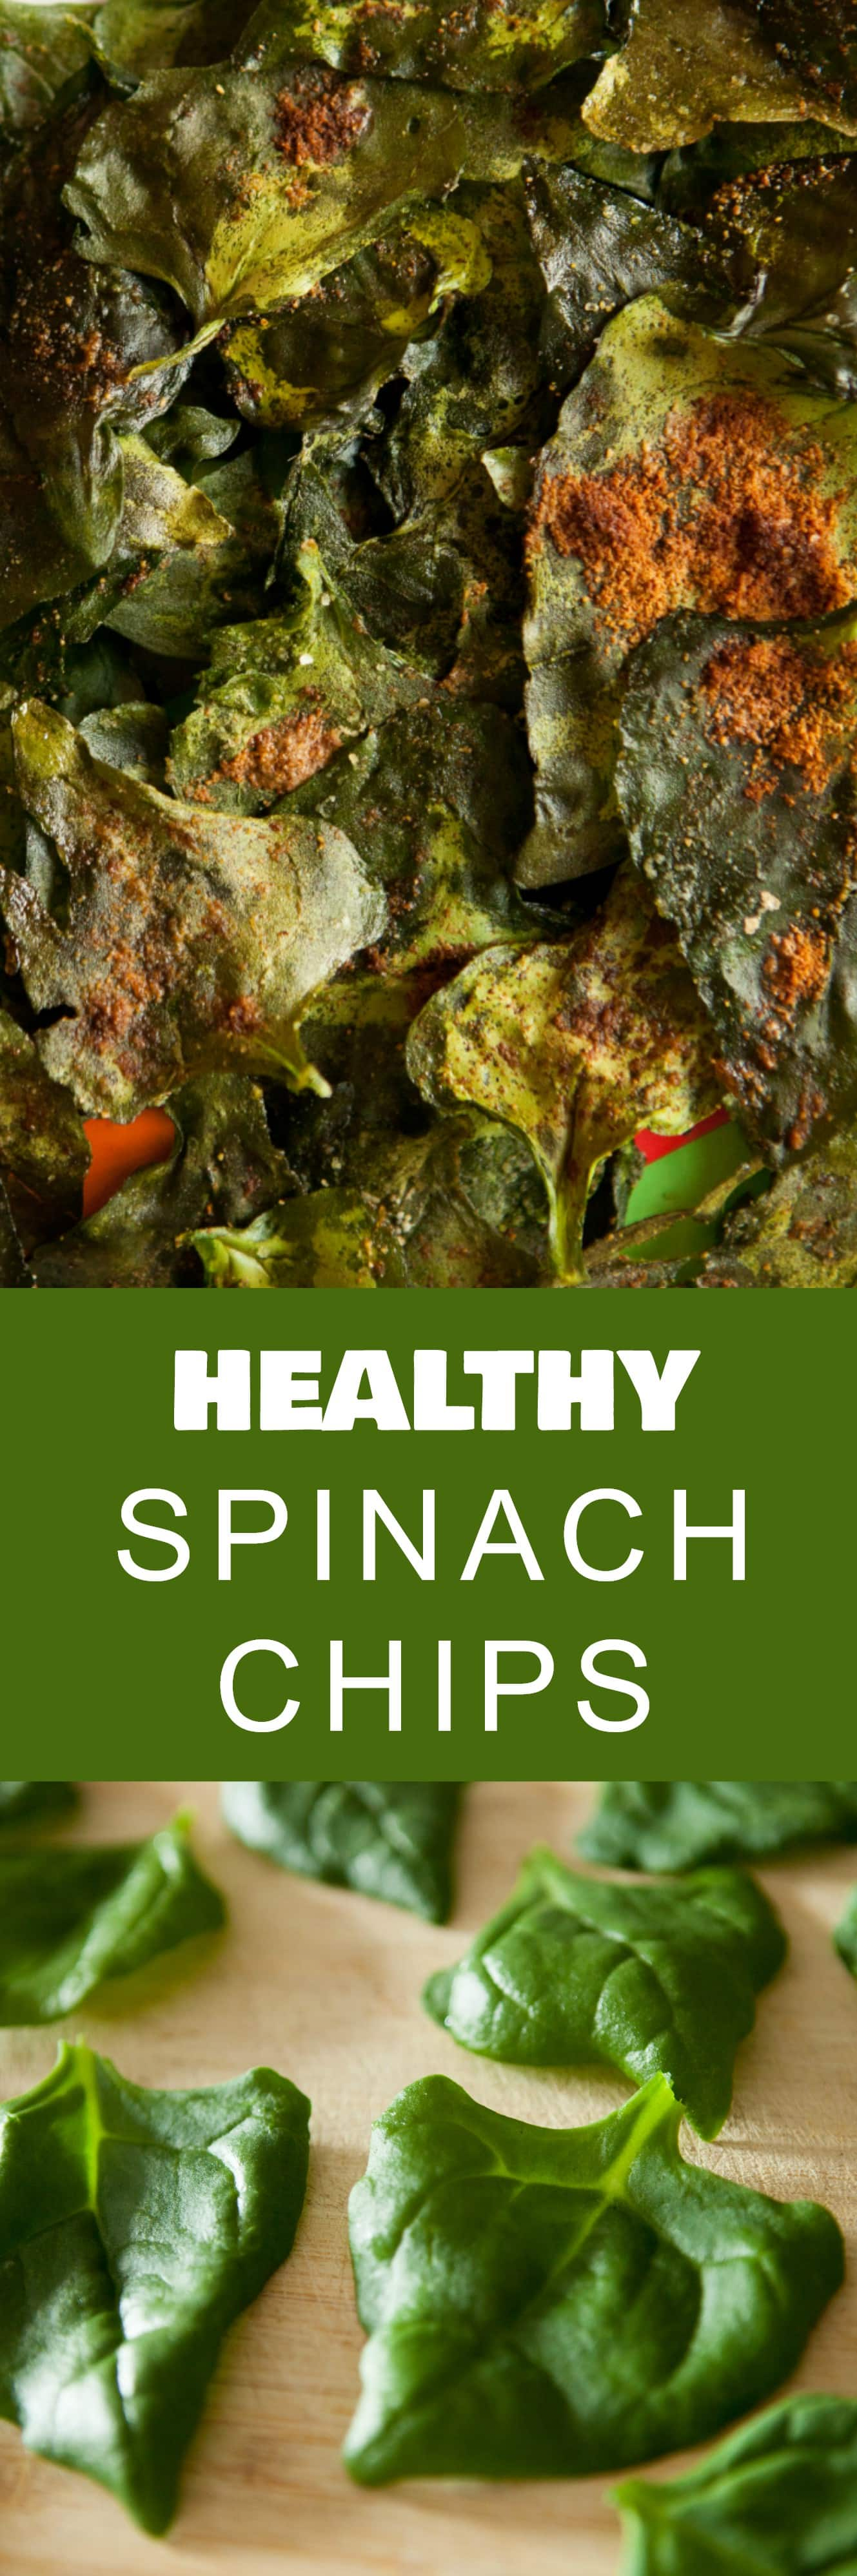 Baked Spinach Chips is a healthy snack made with fresh spinach! This baked recipe is so easy to make! It's a healthy alternative to potato chips!